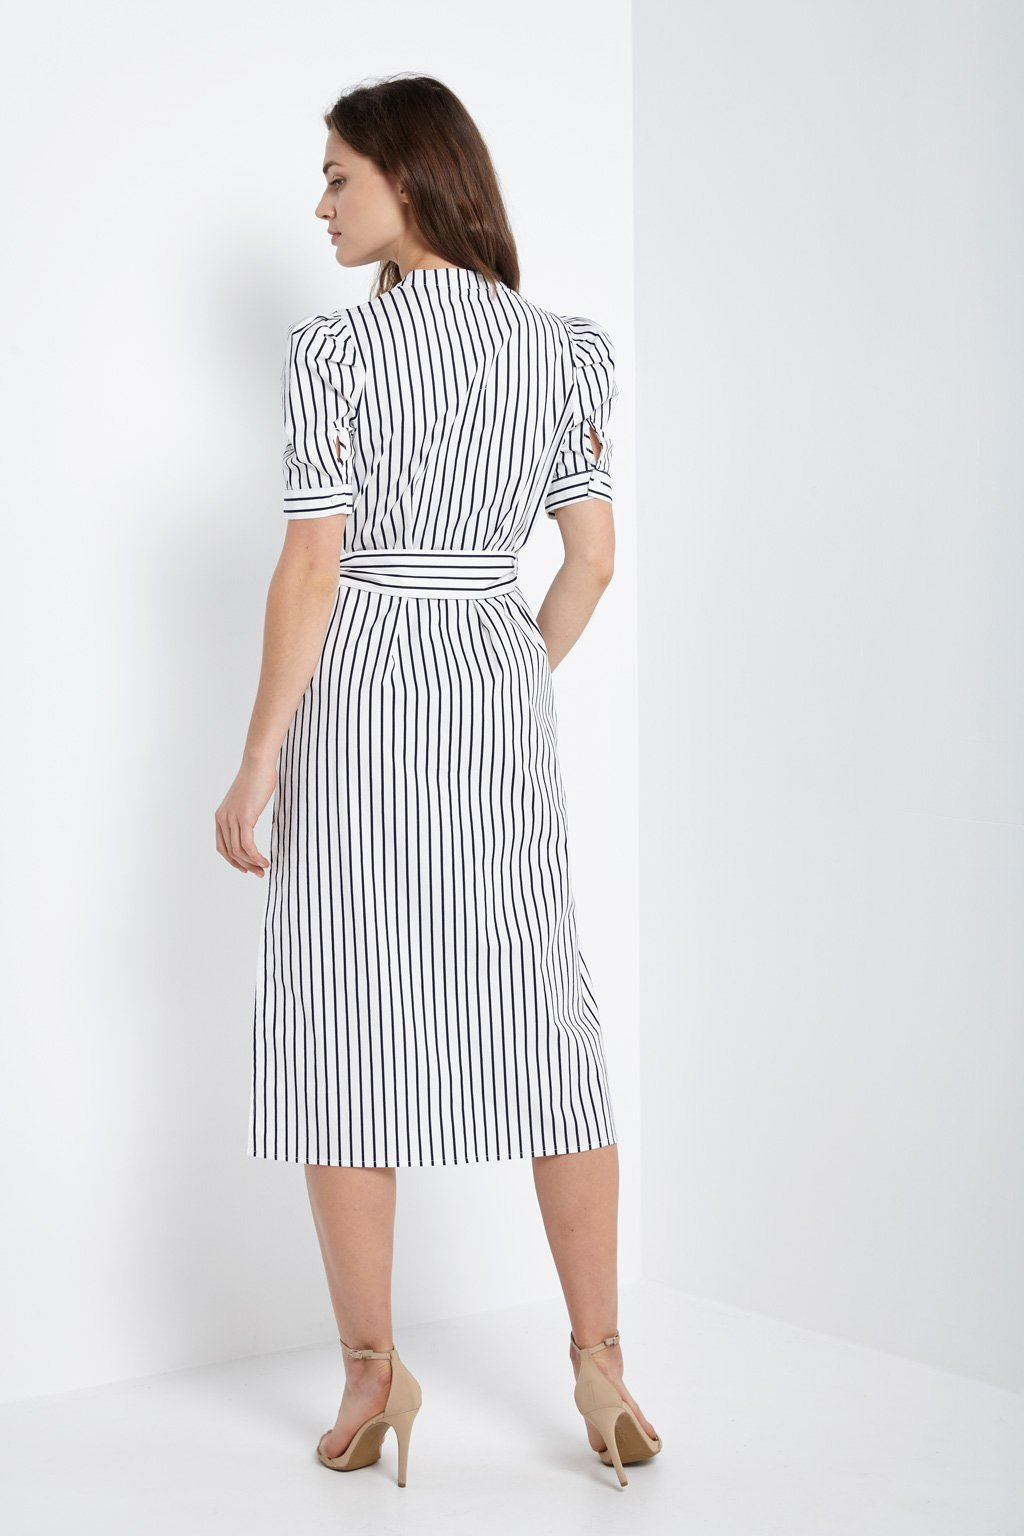 Poshsquare Dress Button Down Side Slit Dress